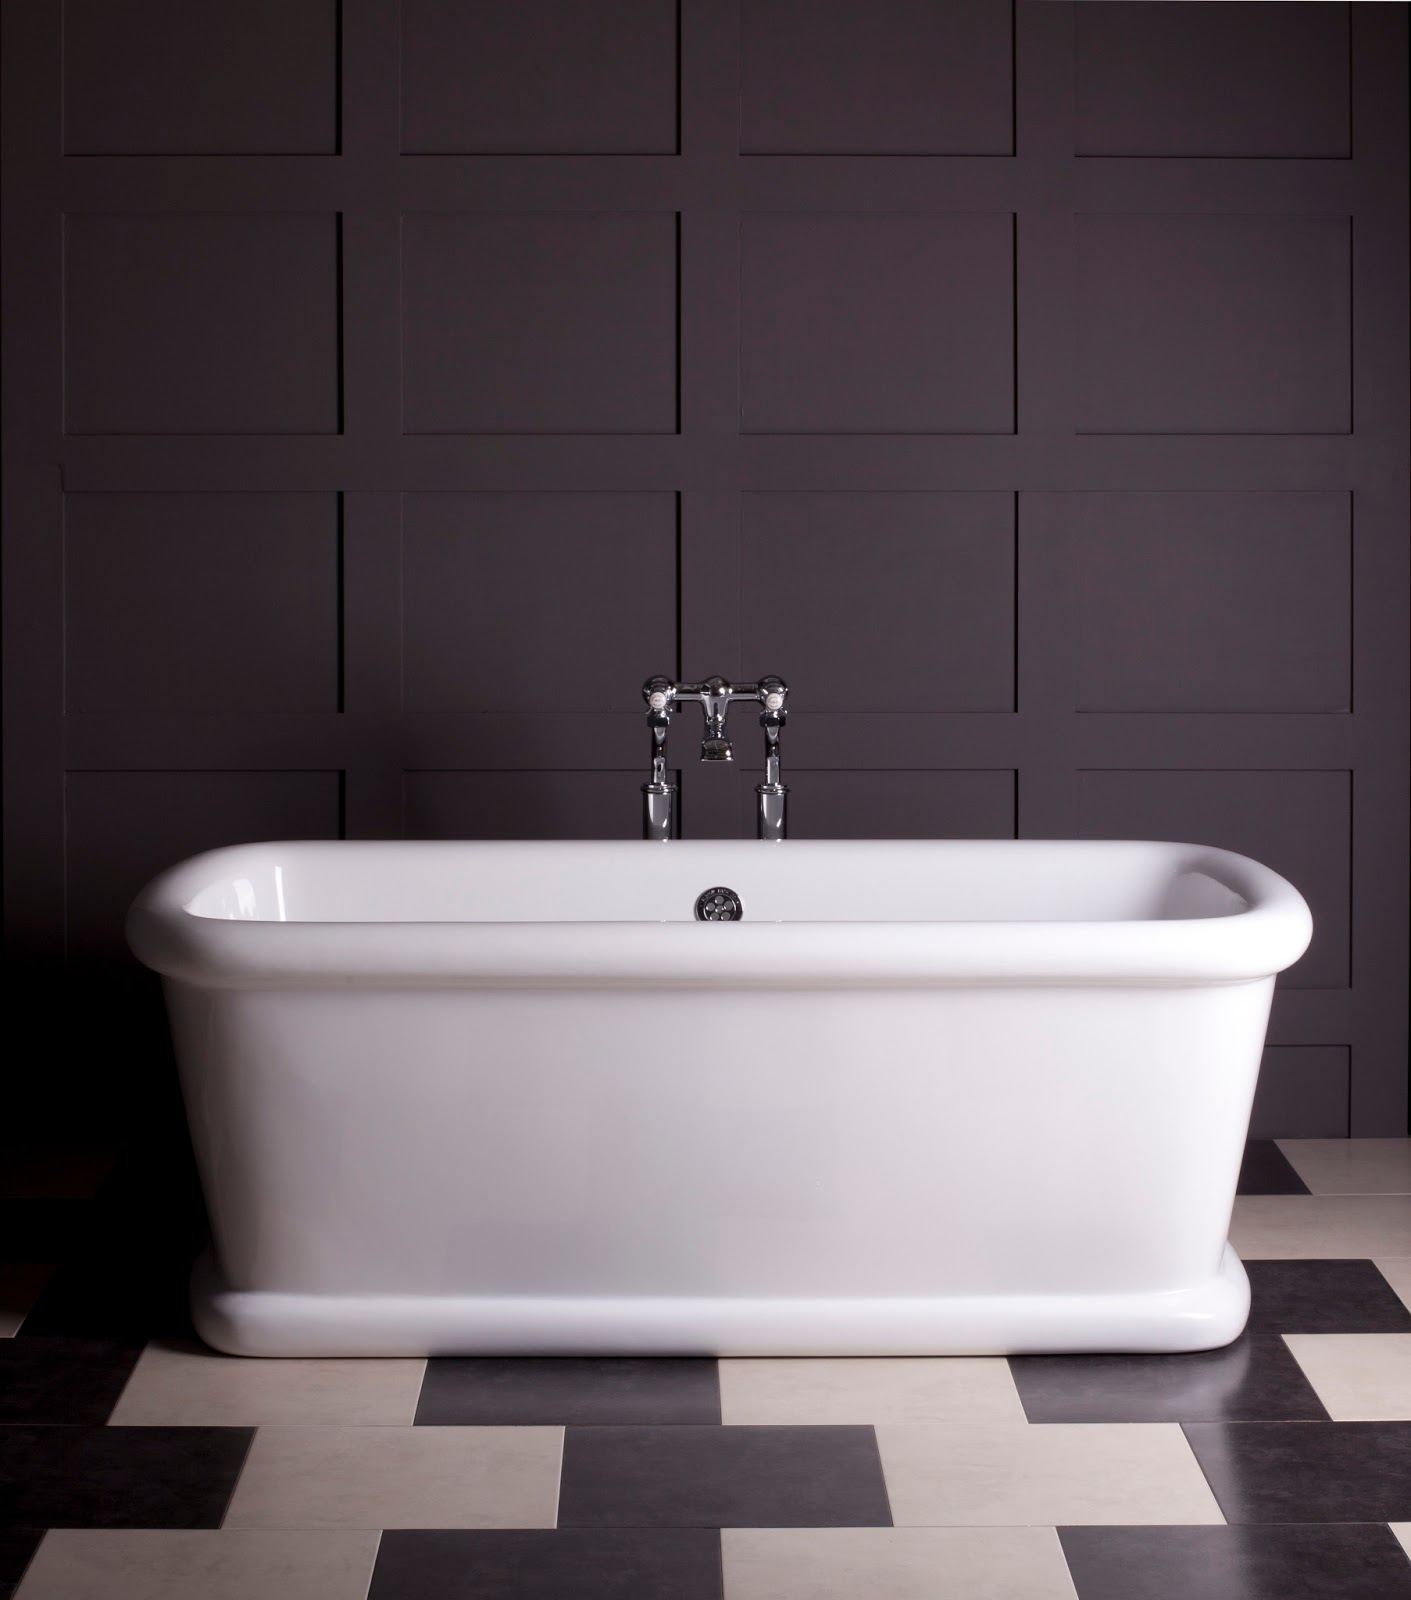 The albion bath company ltd small free standing bath tubs for Free standing bath tub